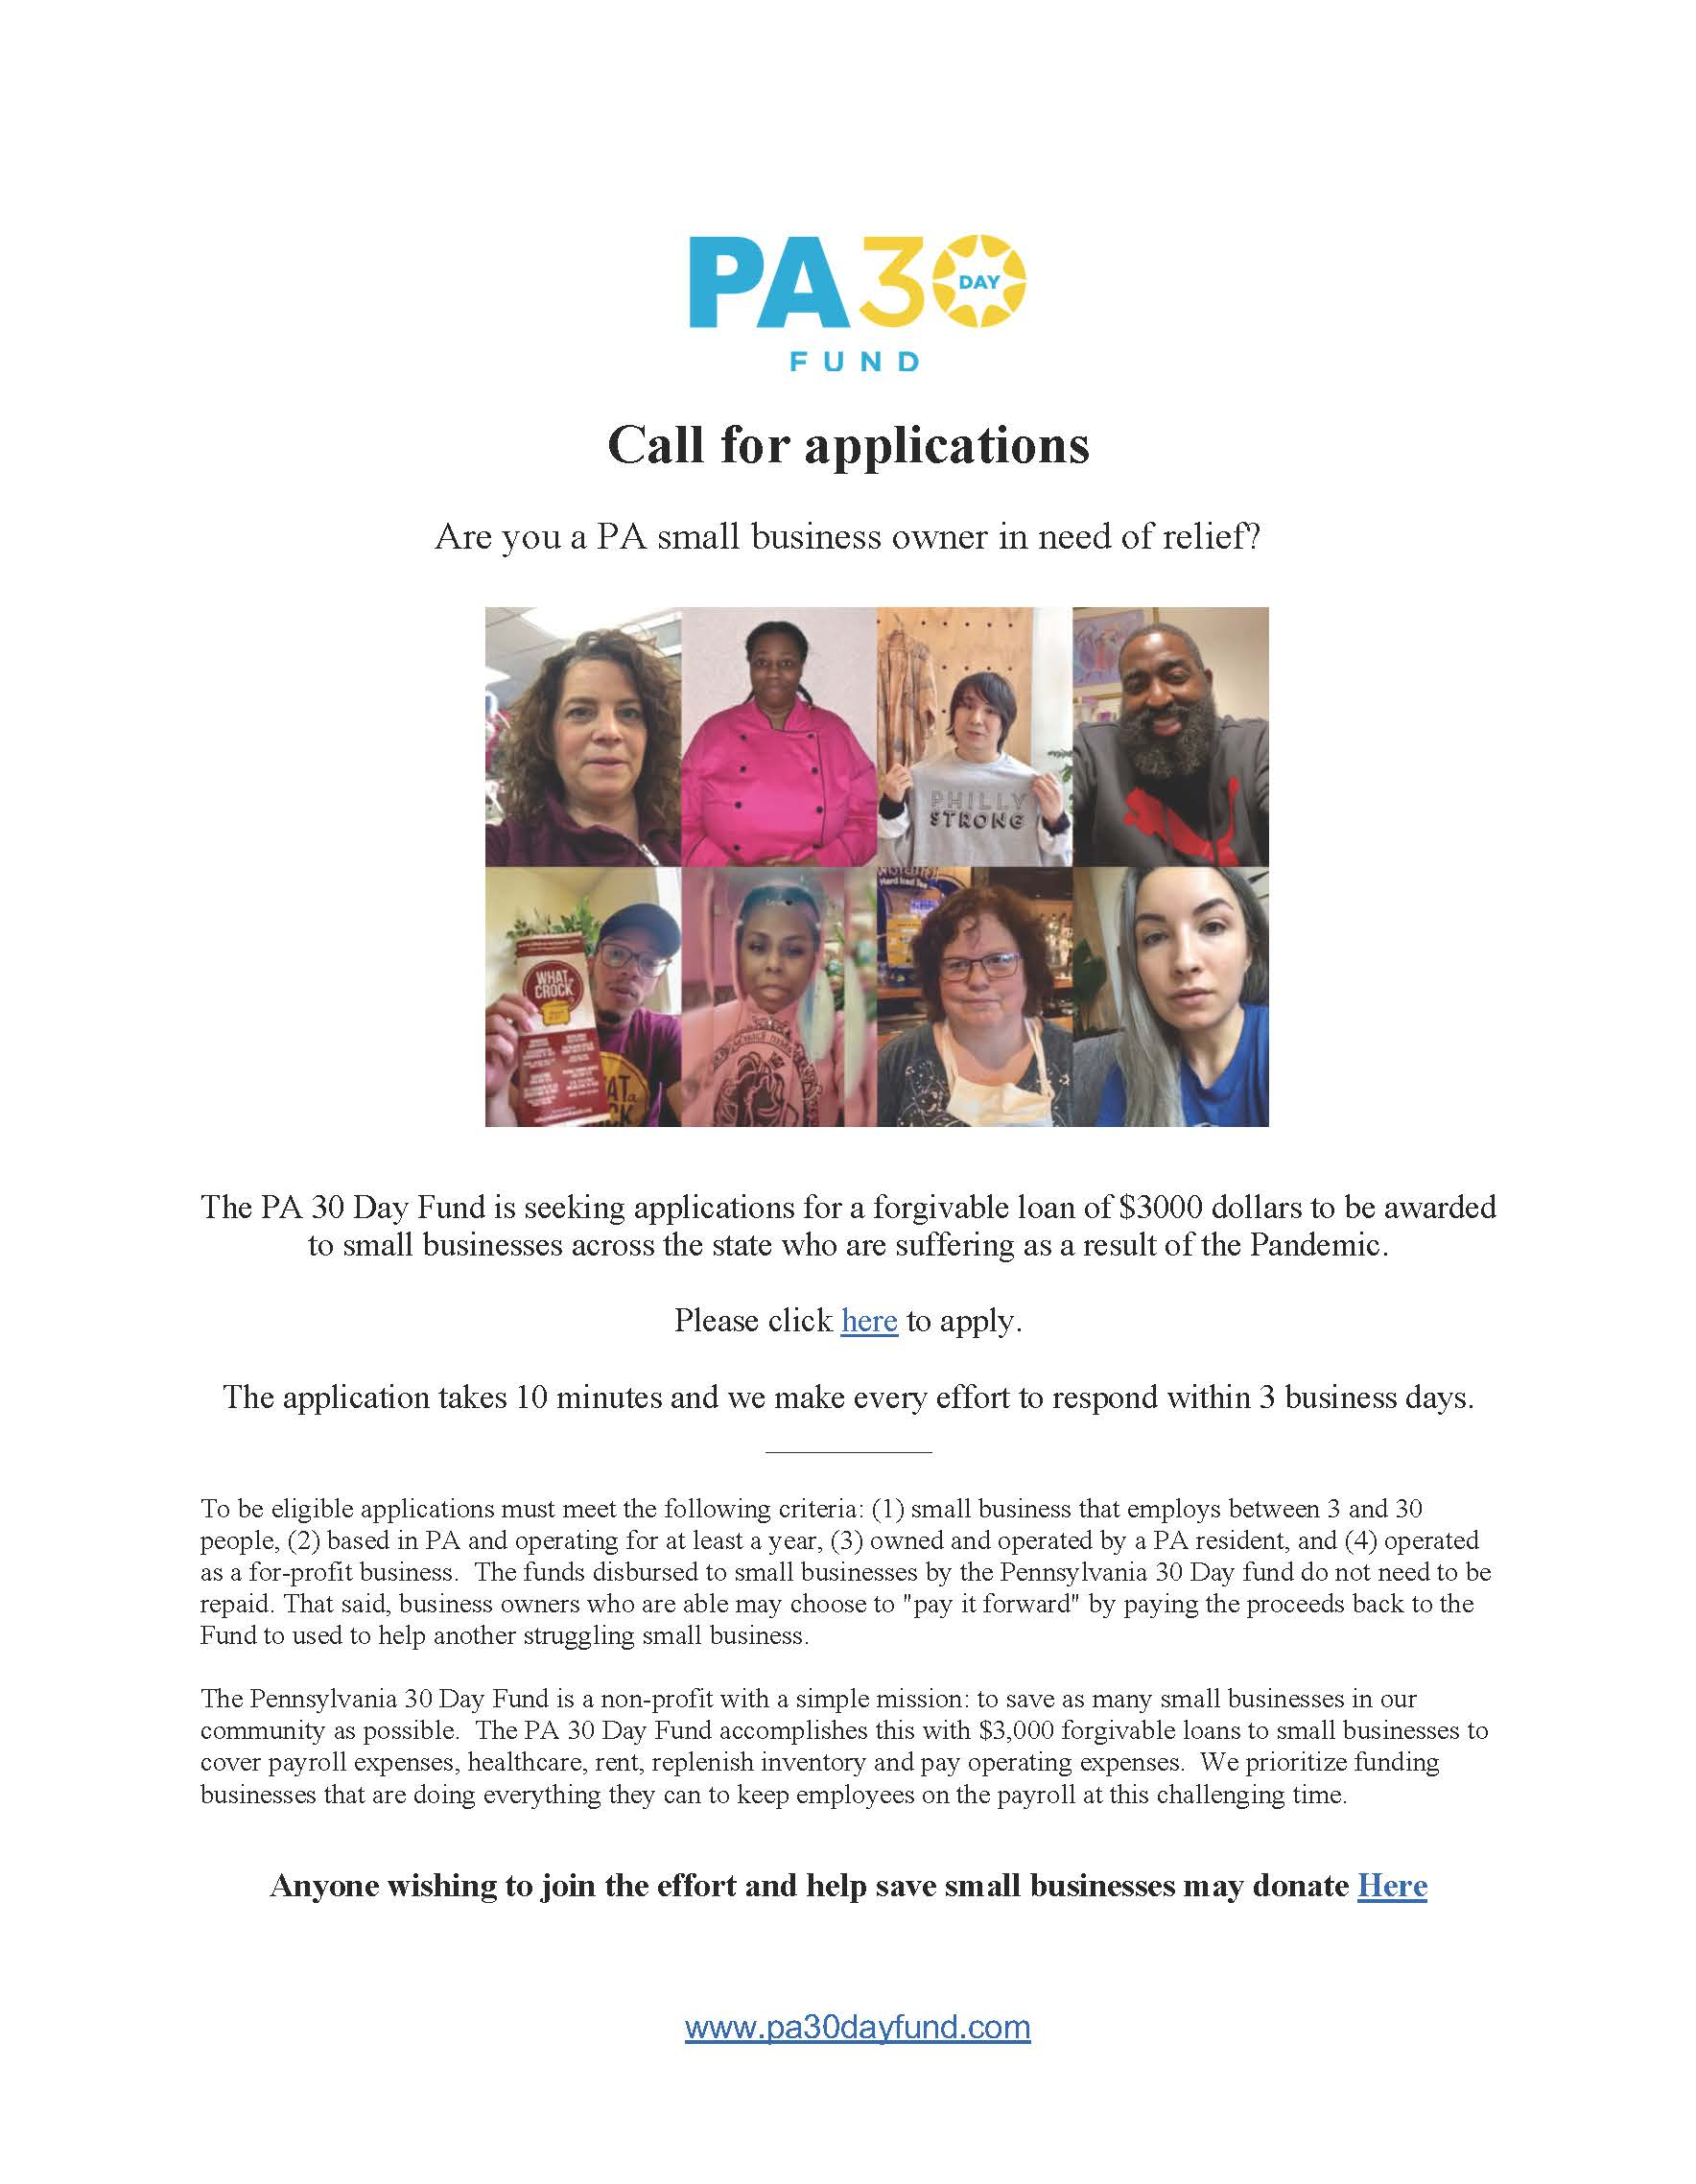 2020 Pennsylvania 30 Day Fund One-Pager (5.29.20)